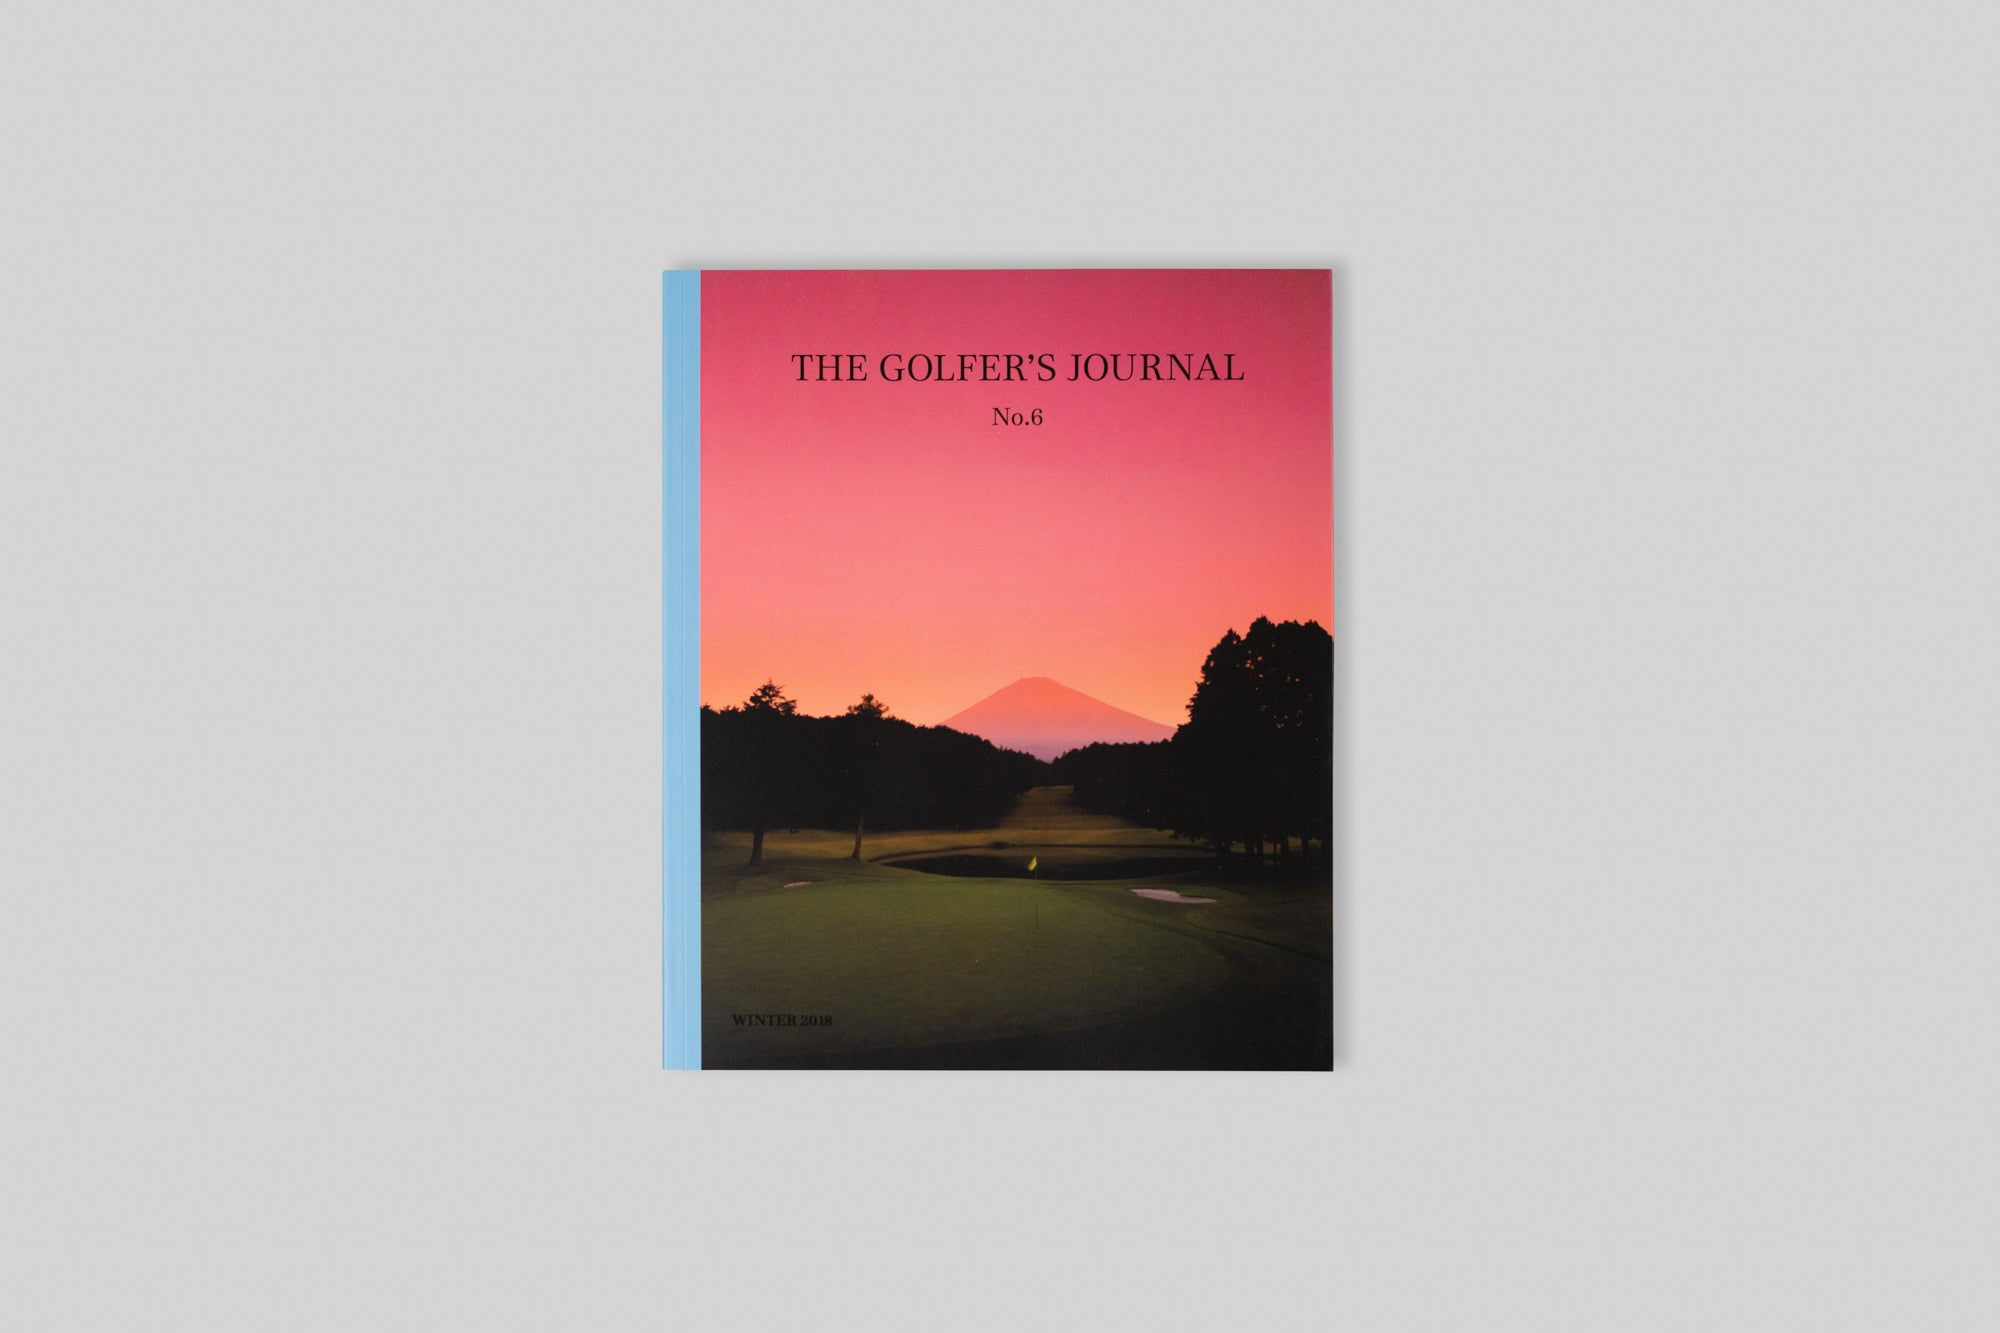 Cover of The Golfer's Journal Issue 6